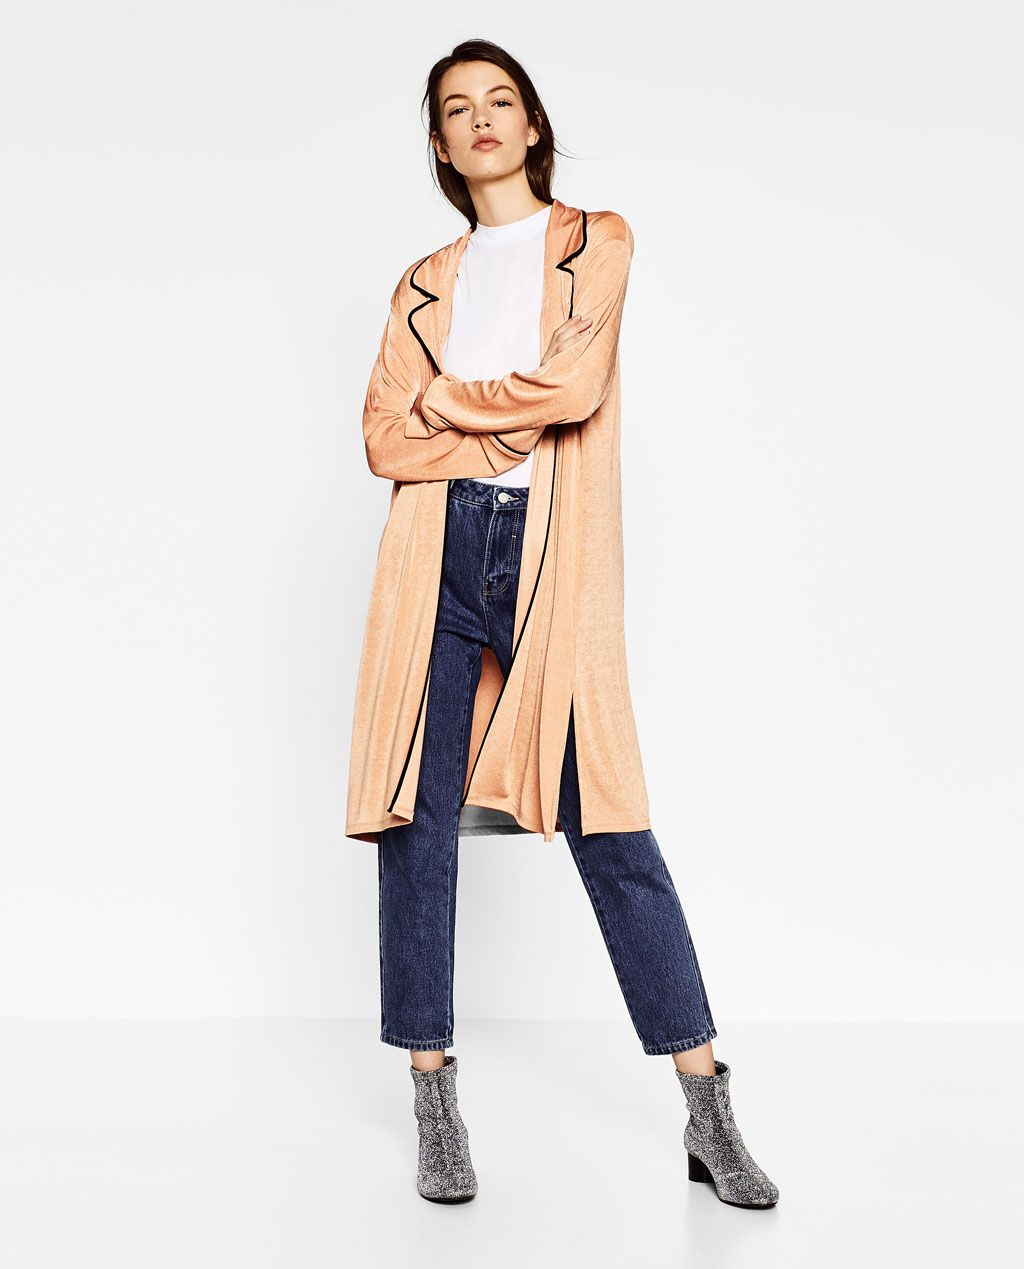 055db666b90d4 PAJAMA-STYLE JACKET-View all-TOPS-WOMAN | ZARA United States ...